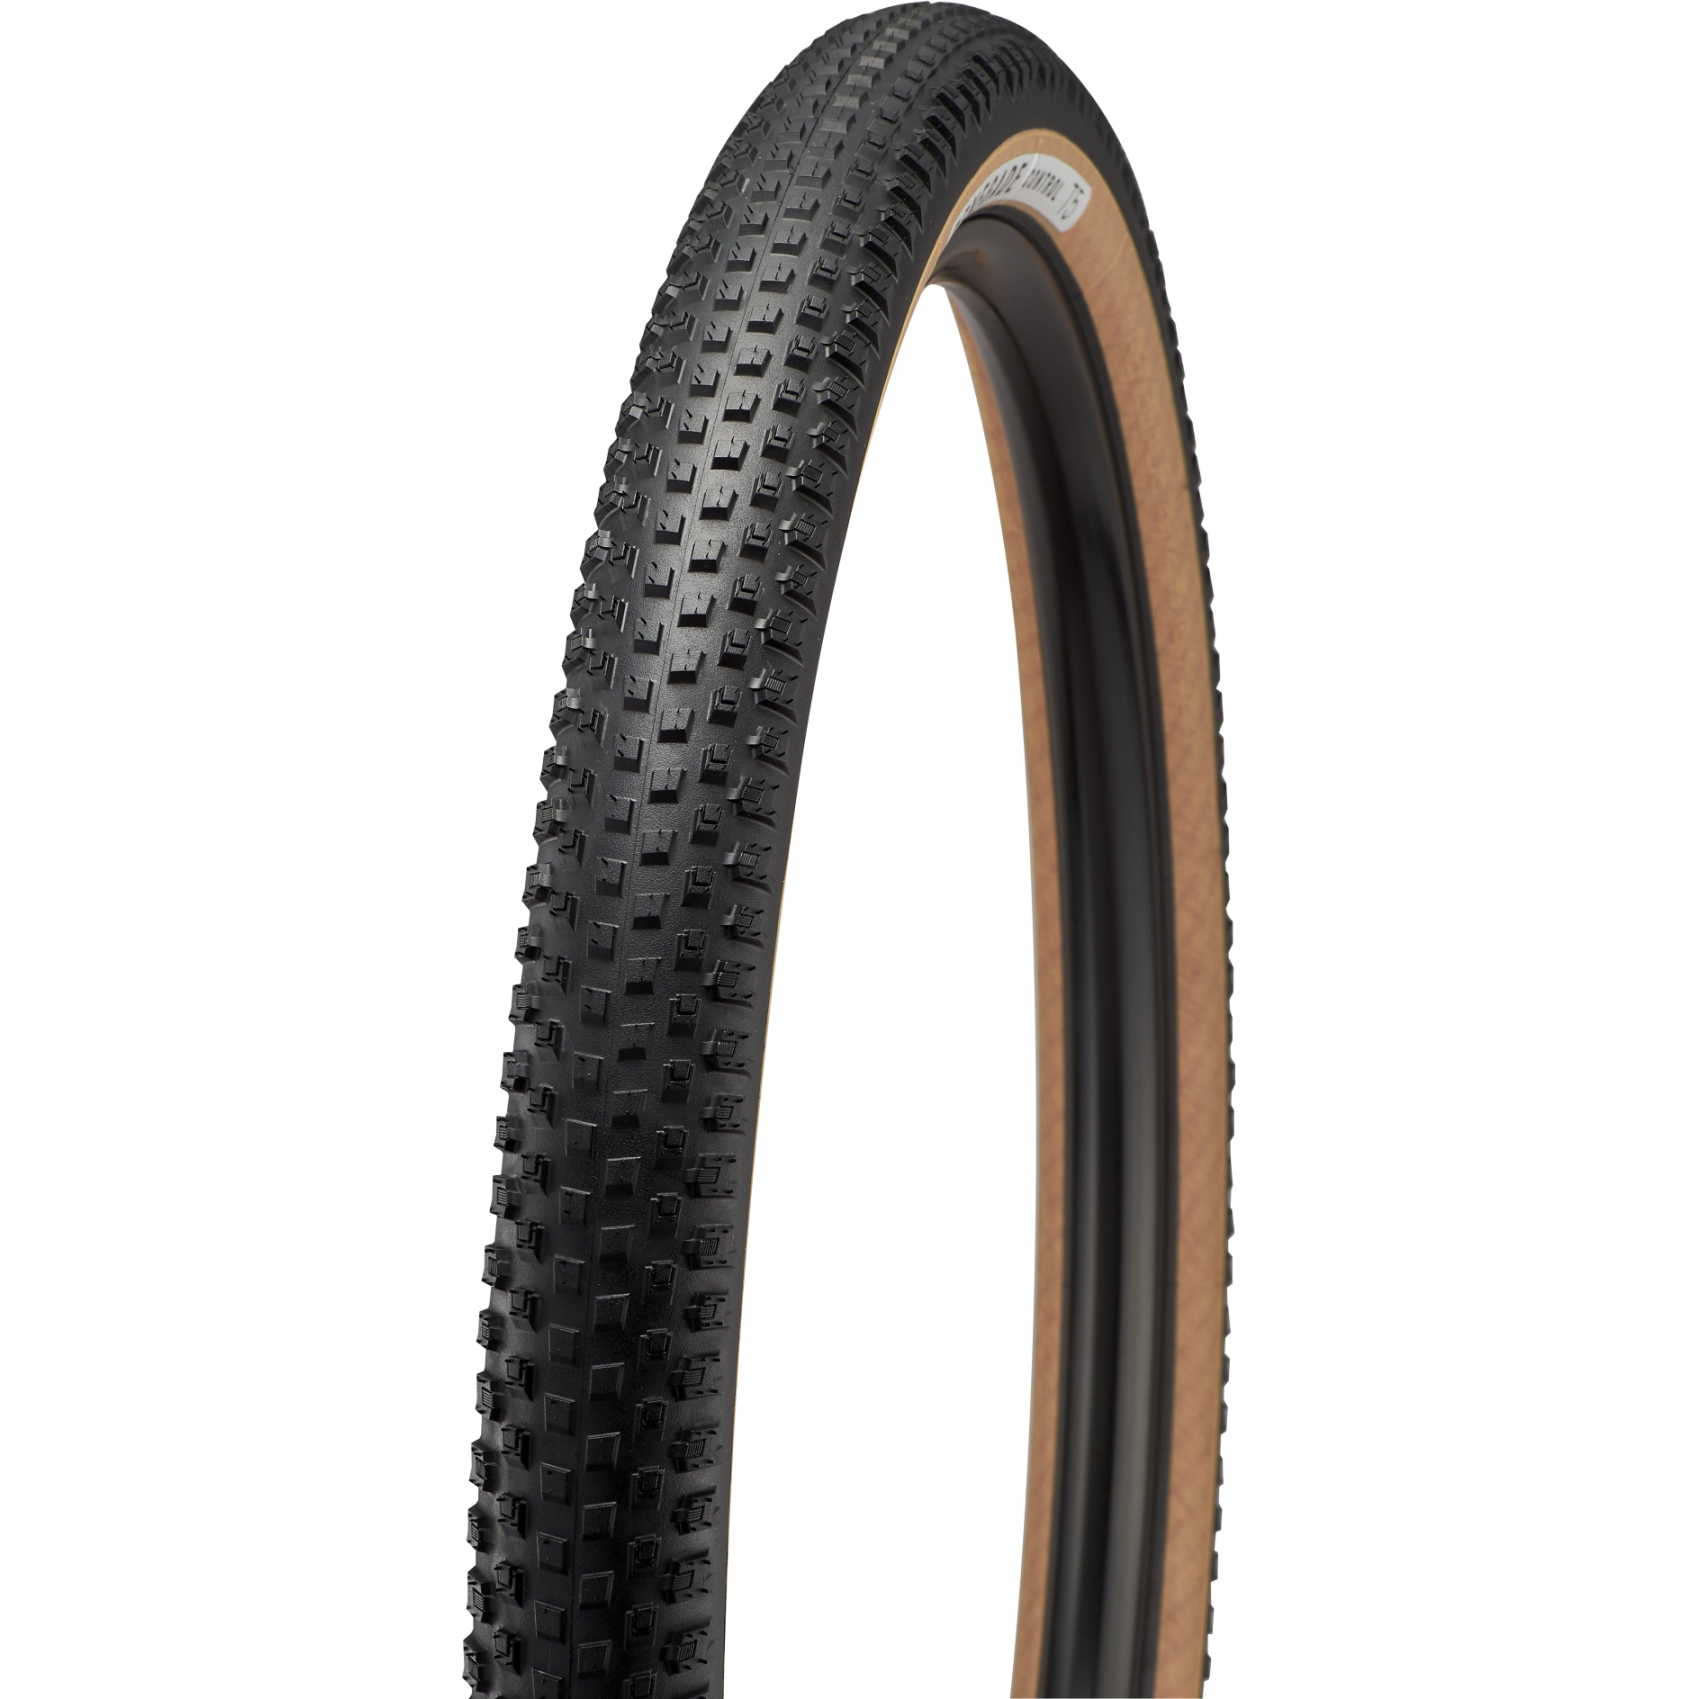 Picture of Specialized Renegade Control 2Bliss Ready T5 Folding Tire 29x2.35 Inch - Tan Sidewall